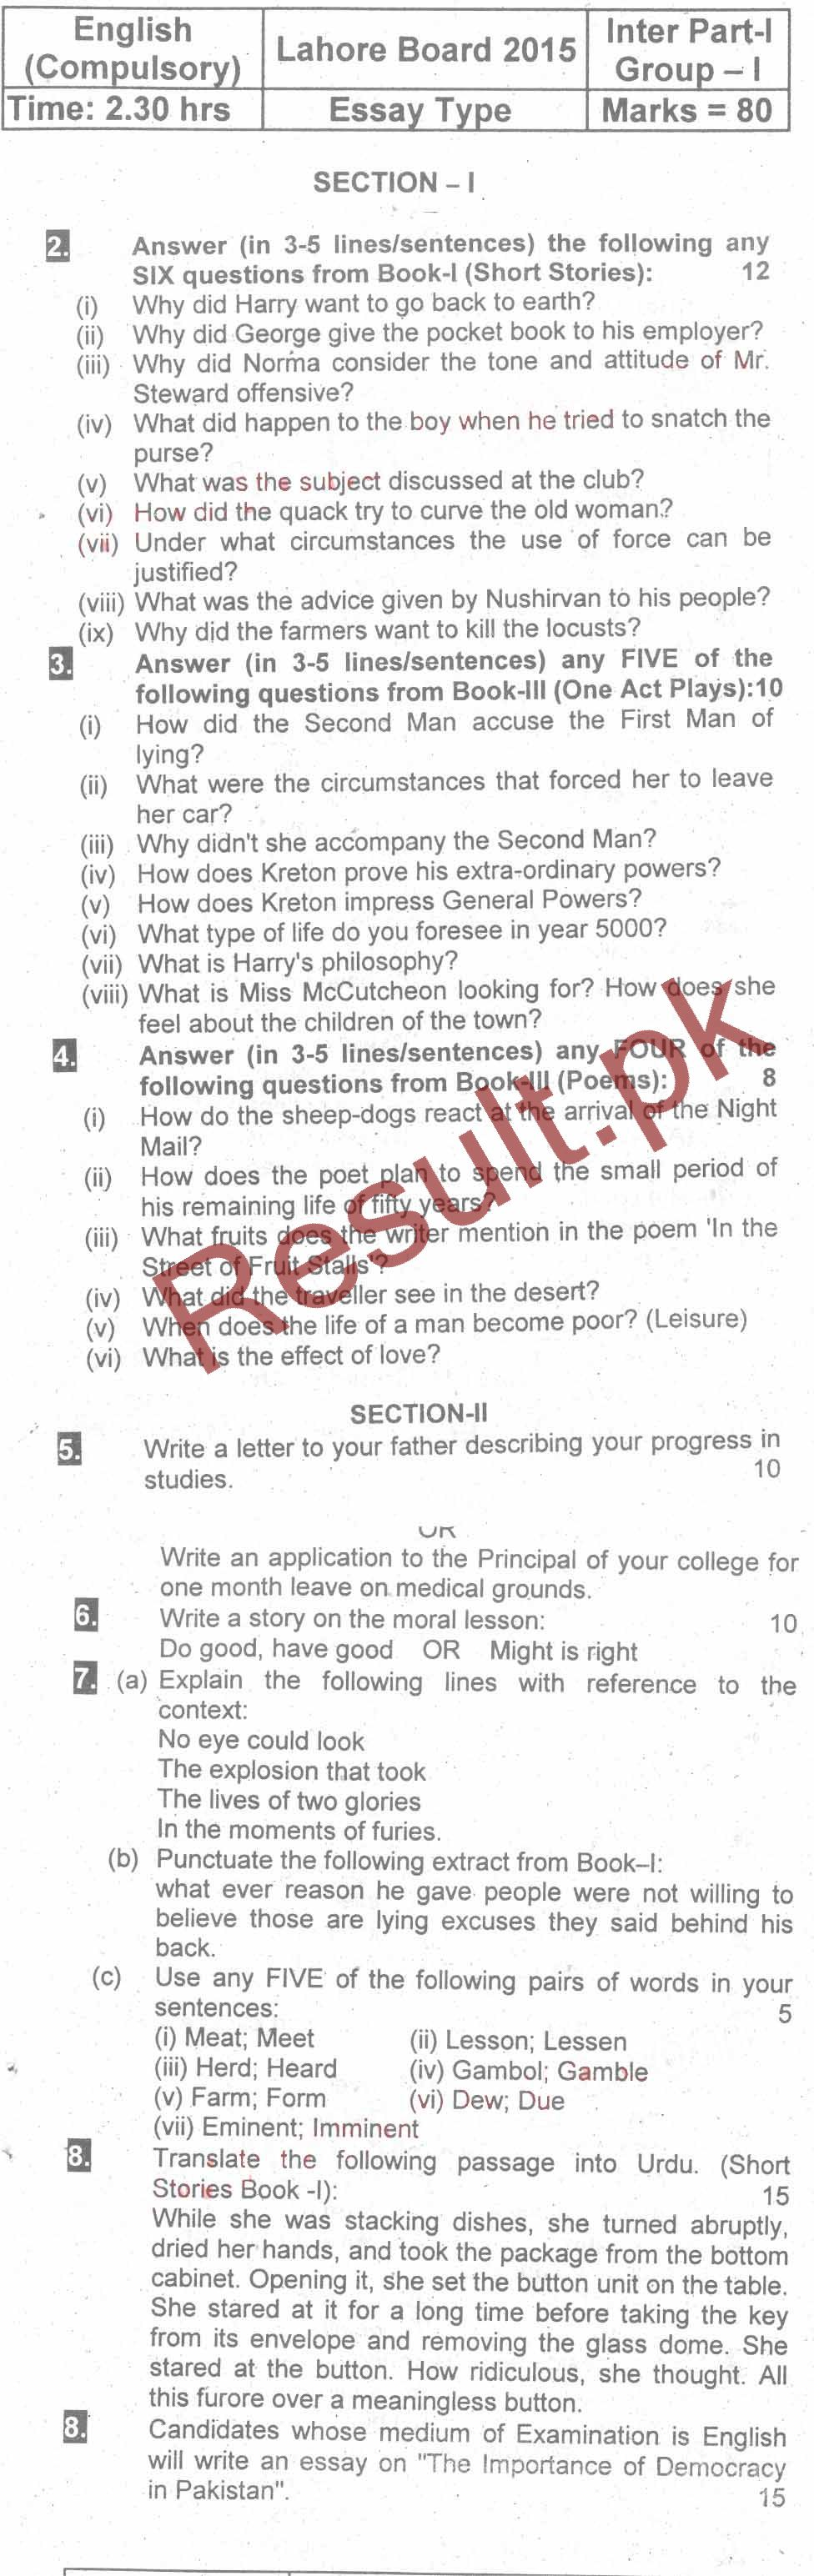 Thesis Statements For Persuasive Essays Essaywriterscom Review Argumentative Essay Thesis Examples also Thesis Statement Persuasive Essay English Paper  Class Th  Maherlawofficecom How To Use A Thesis Statement In An Essay